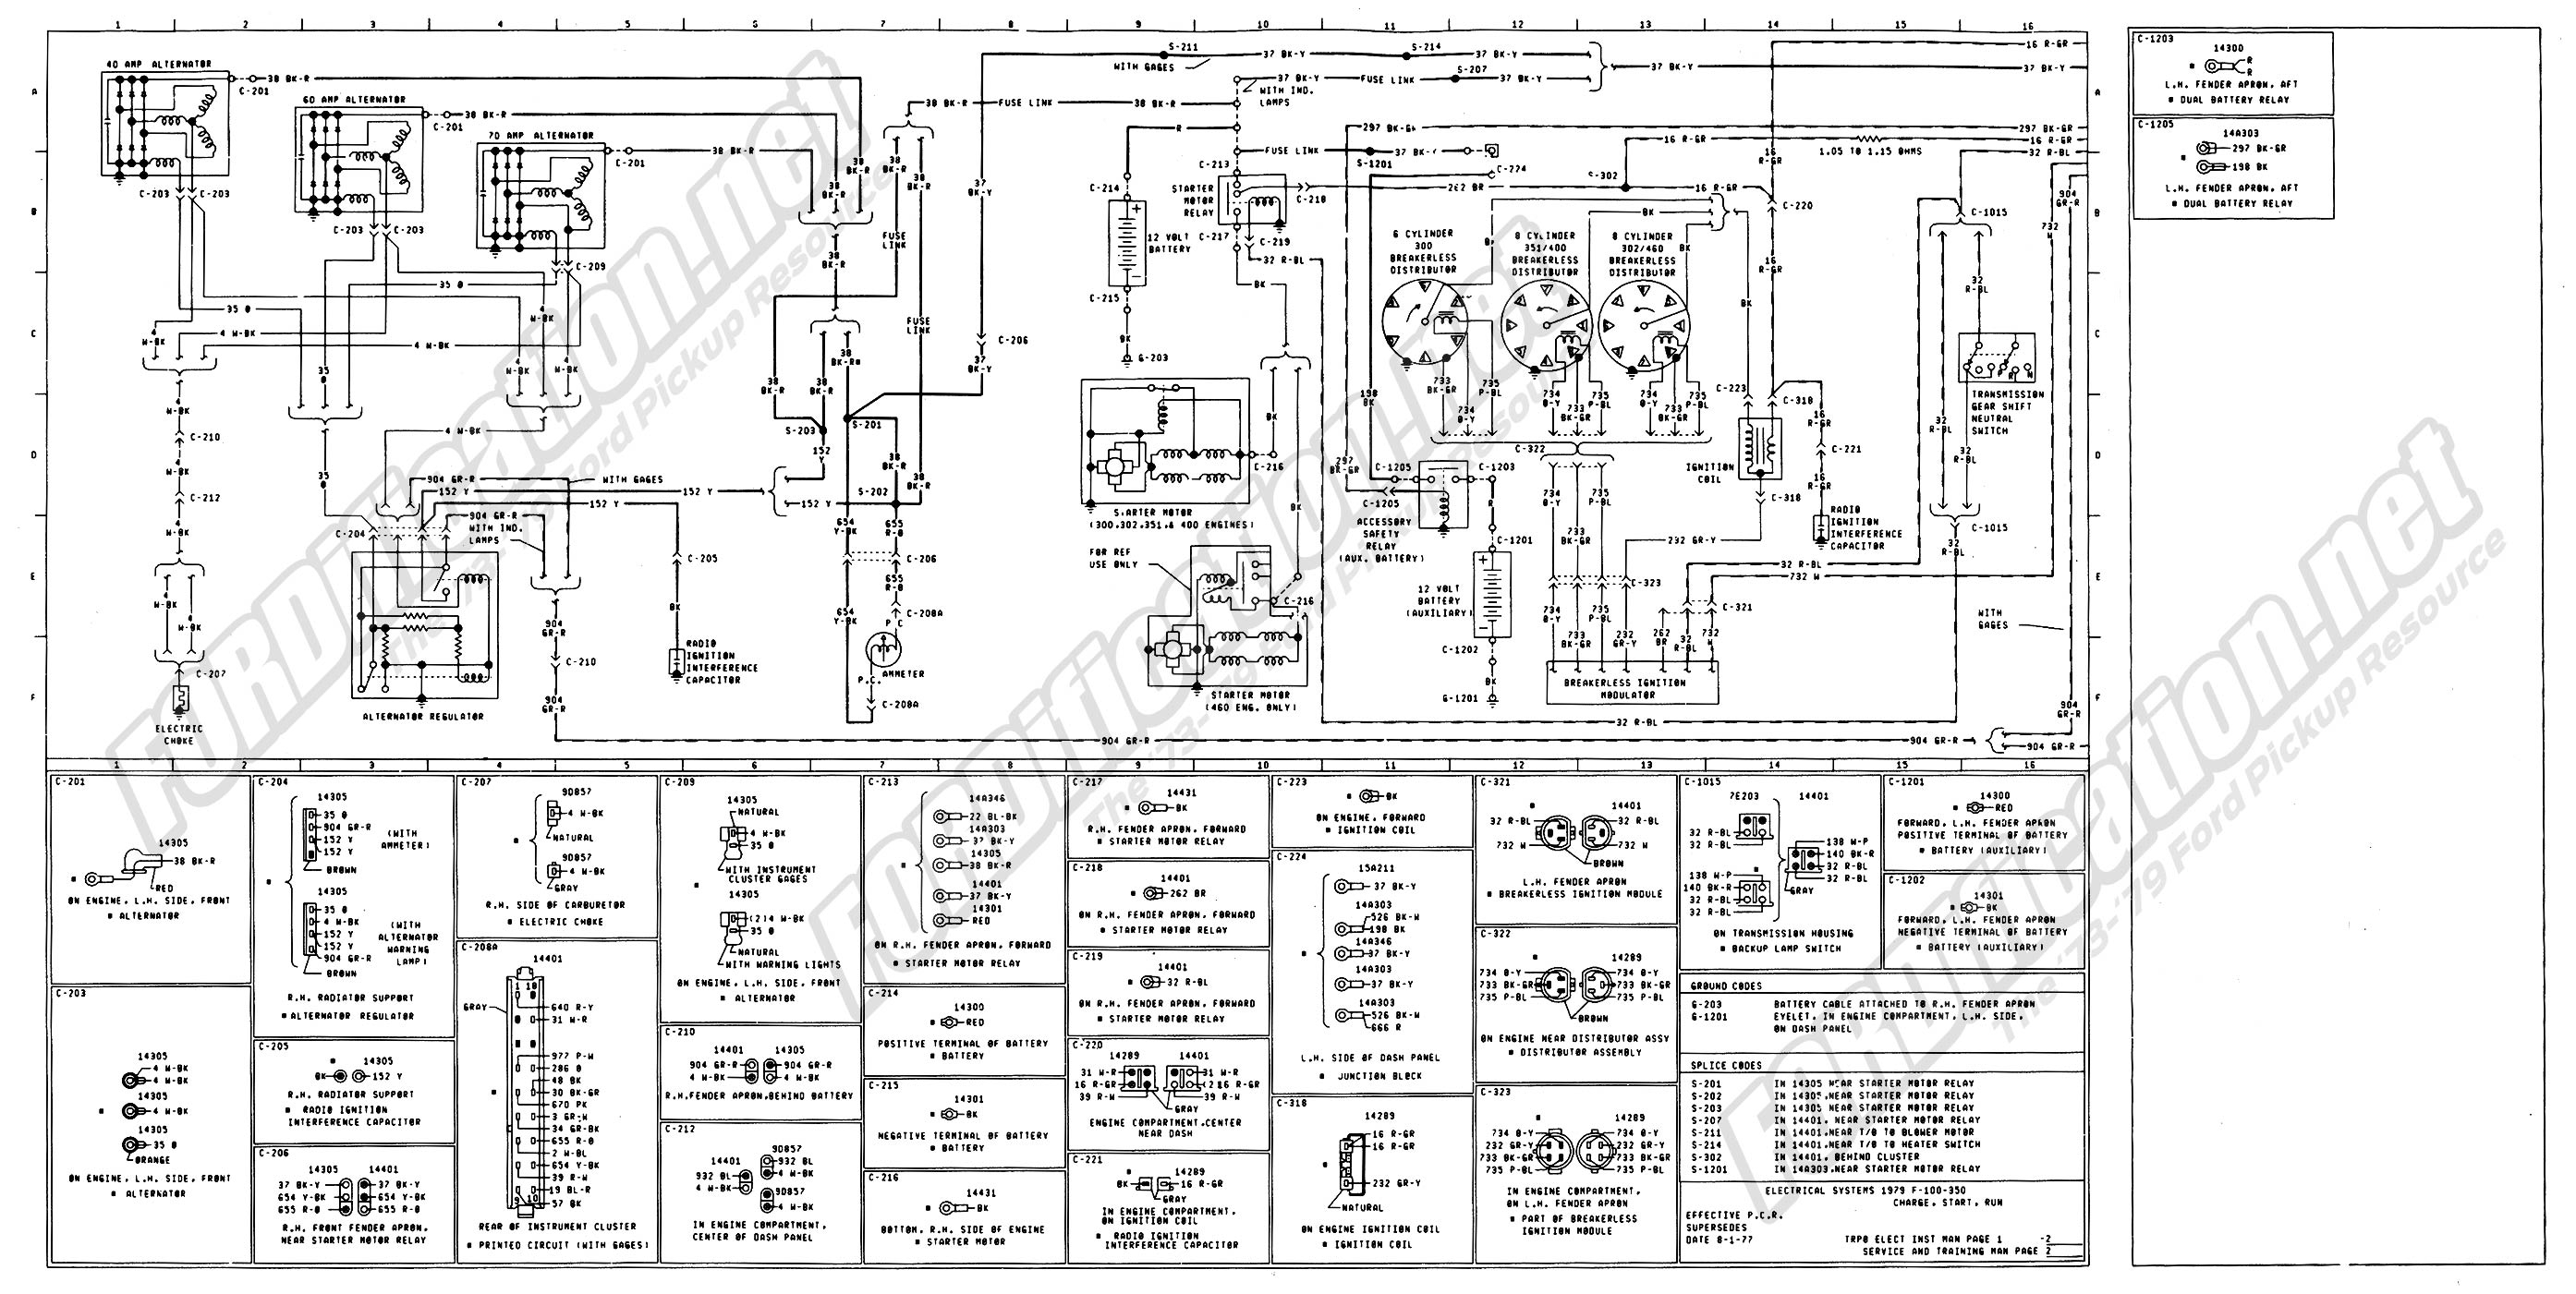 1996 cavalier radio wiring diagram 1996 international radio wiring diagram international truck radio wiring diagram gallery